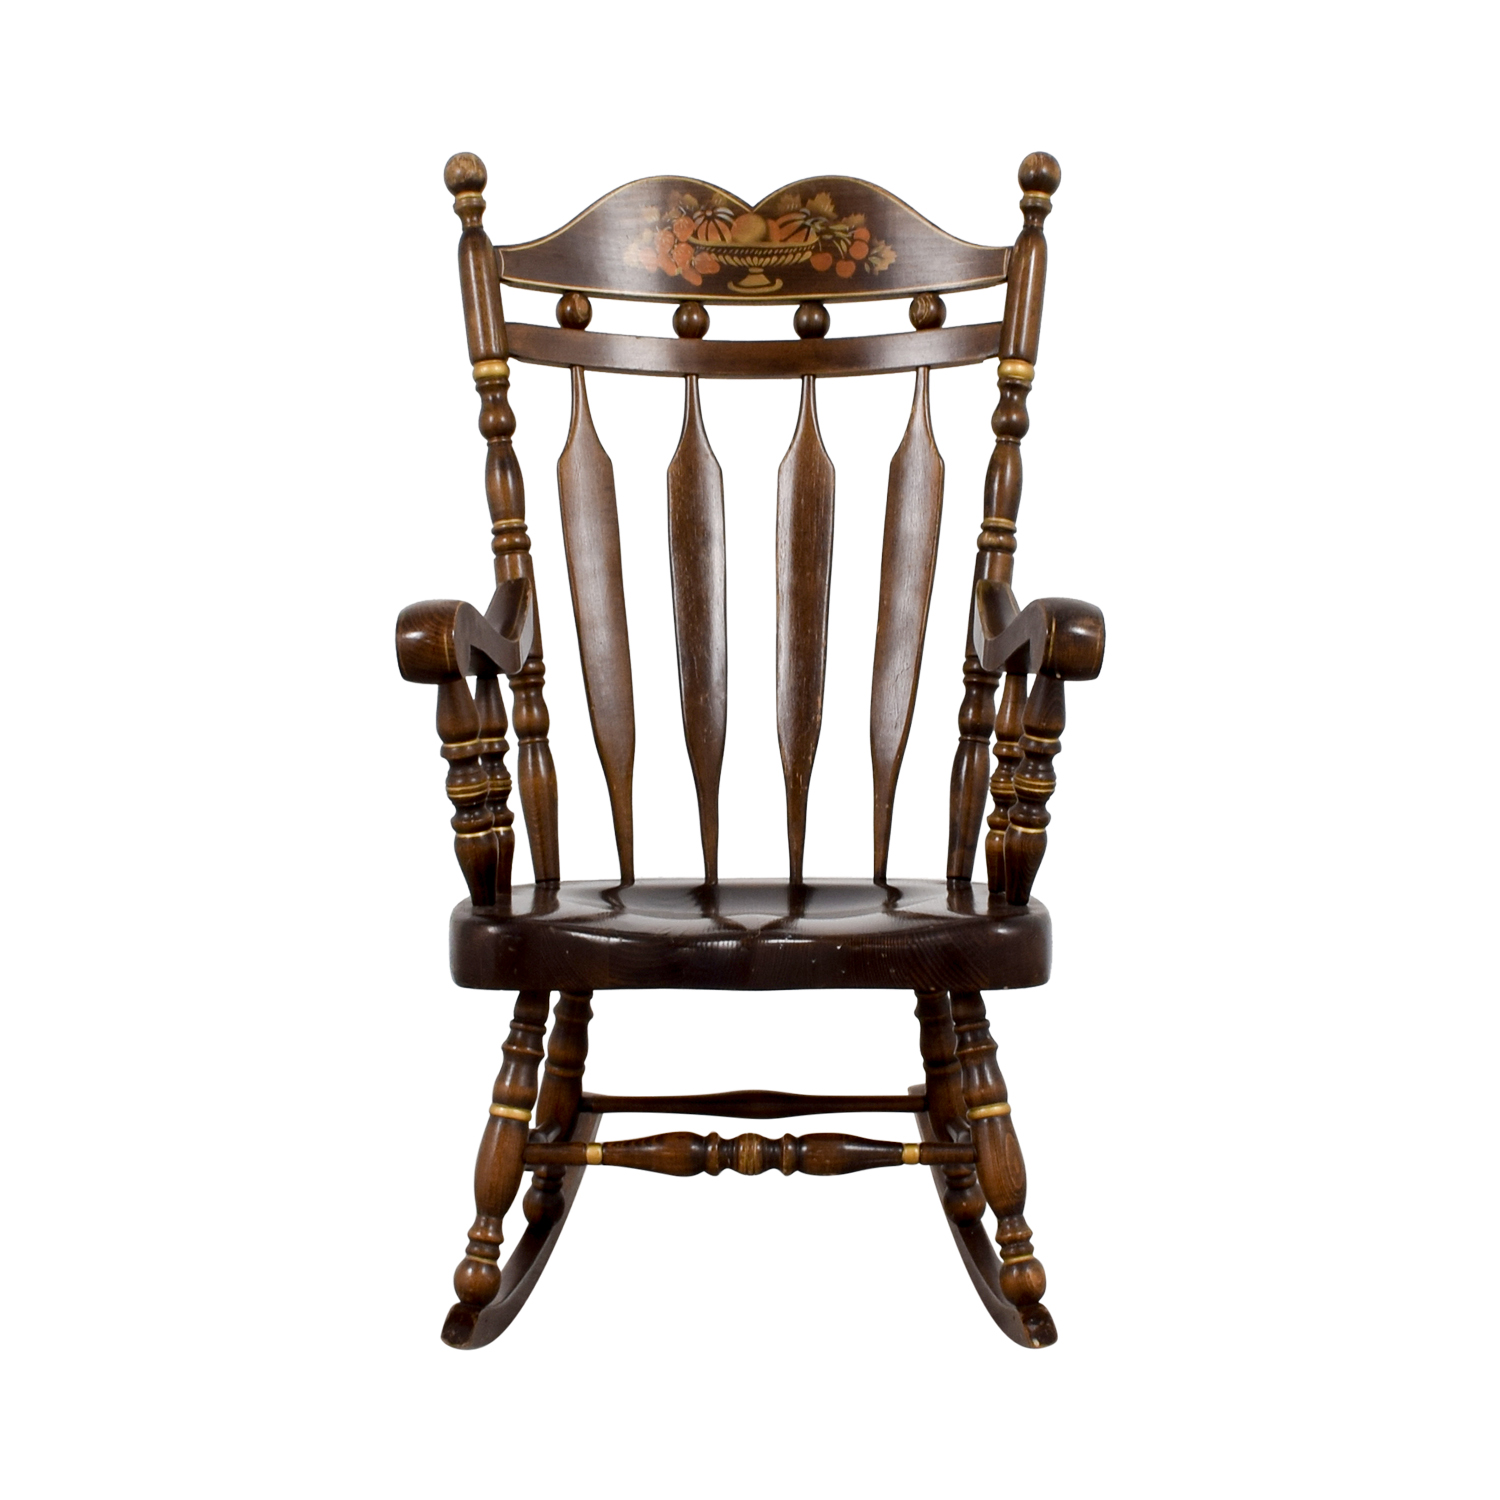 Wood Rocking Chair for sale